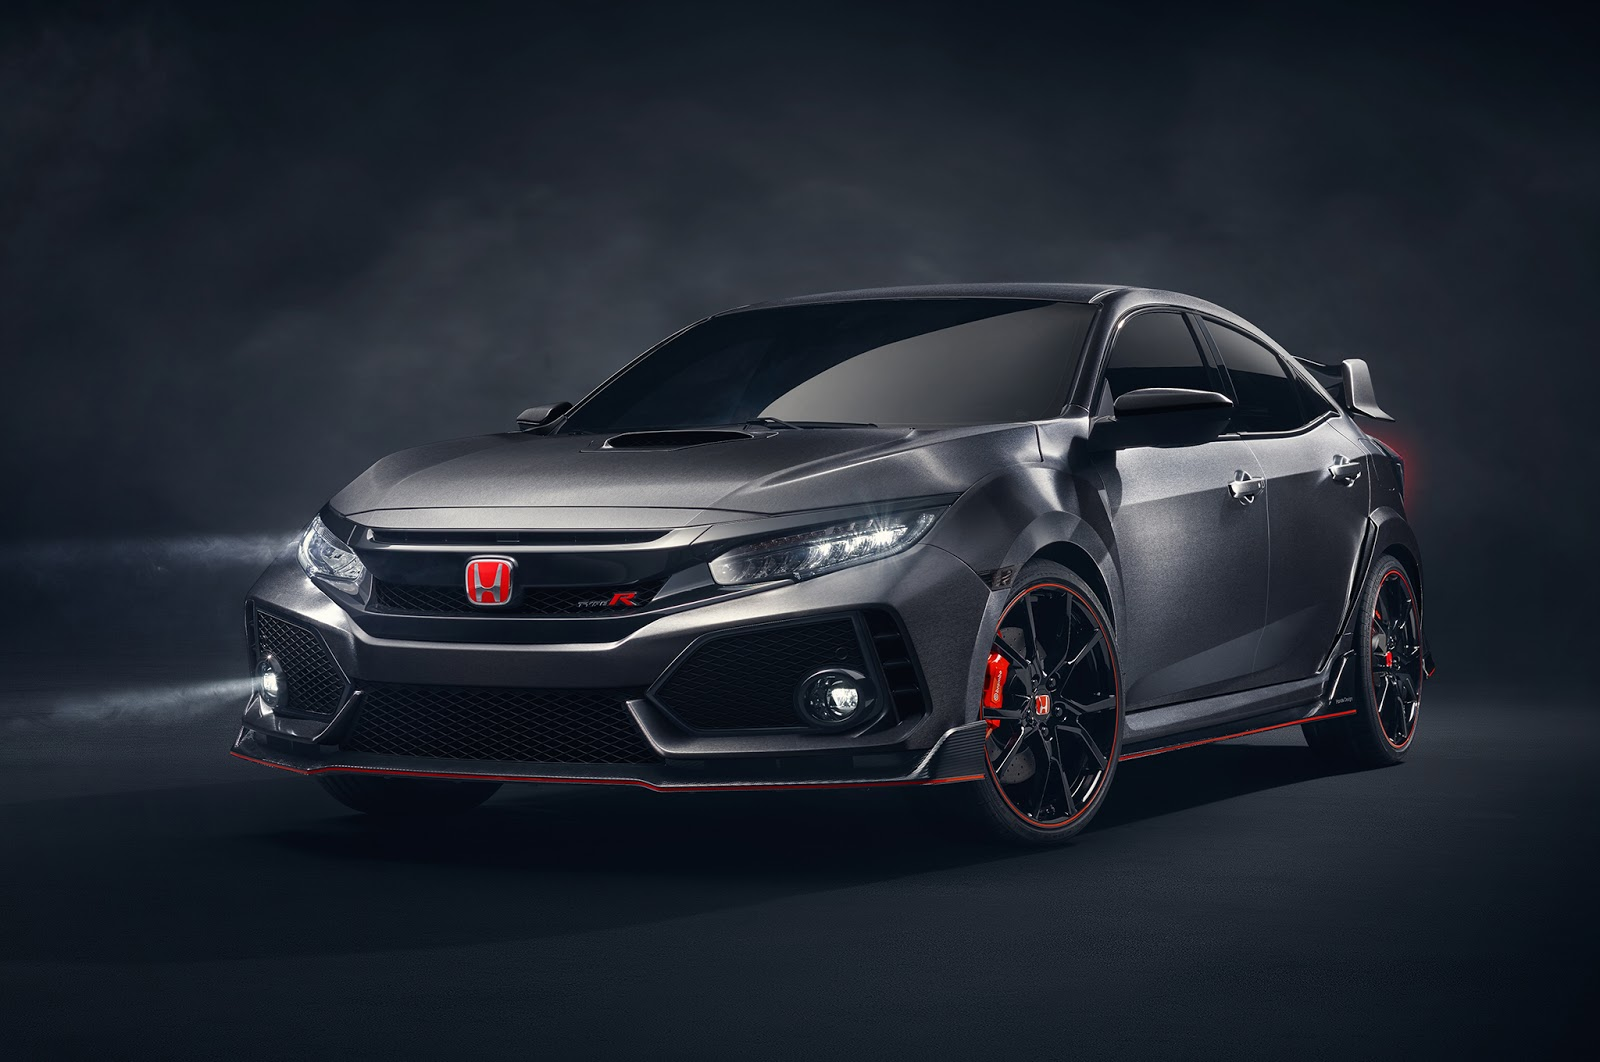 Honda Civic Type R Production Model To Debut In Geneva